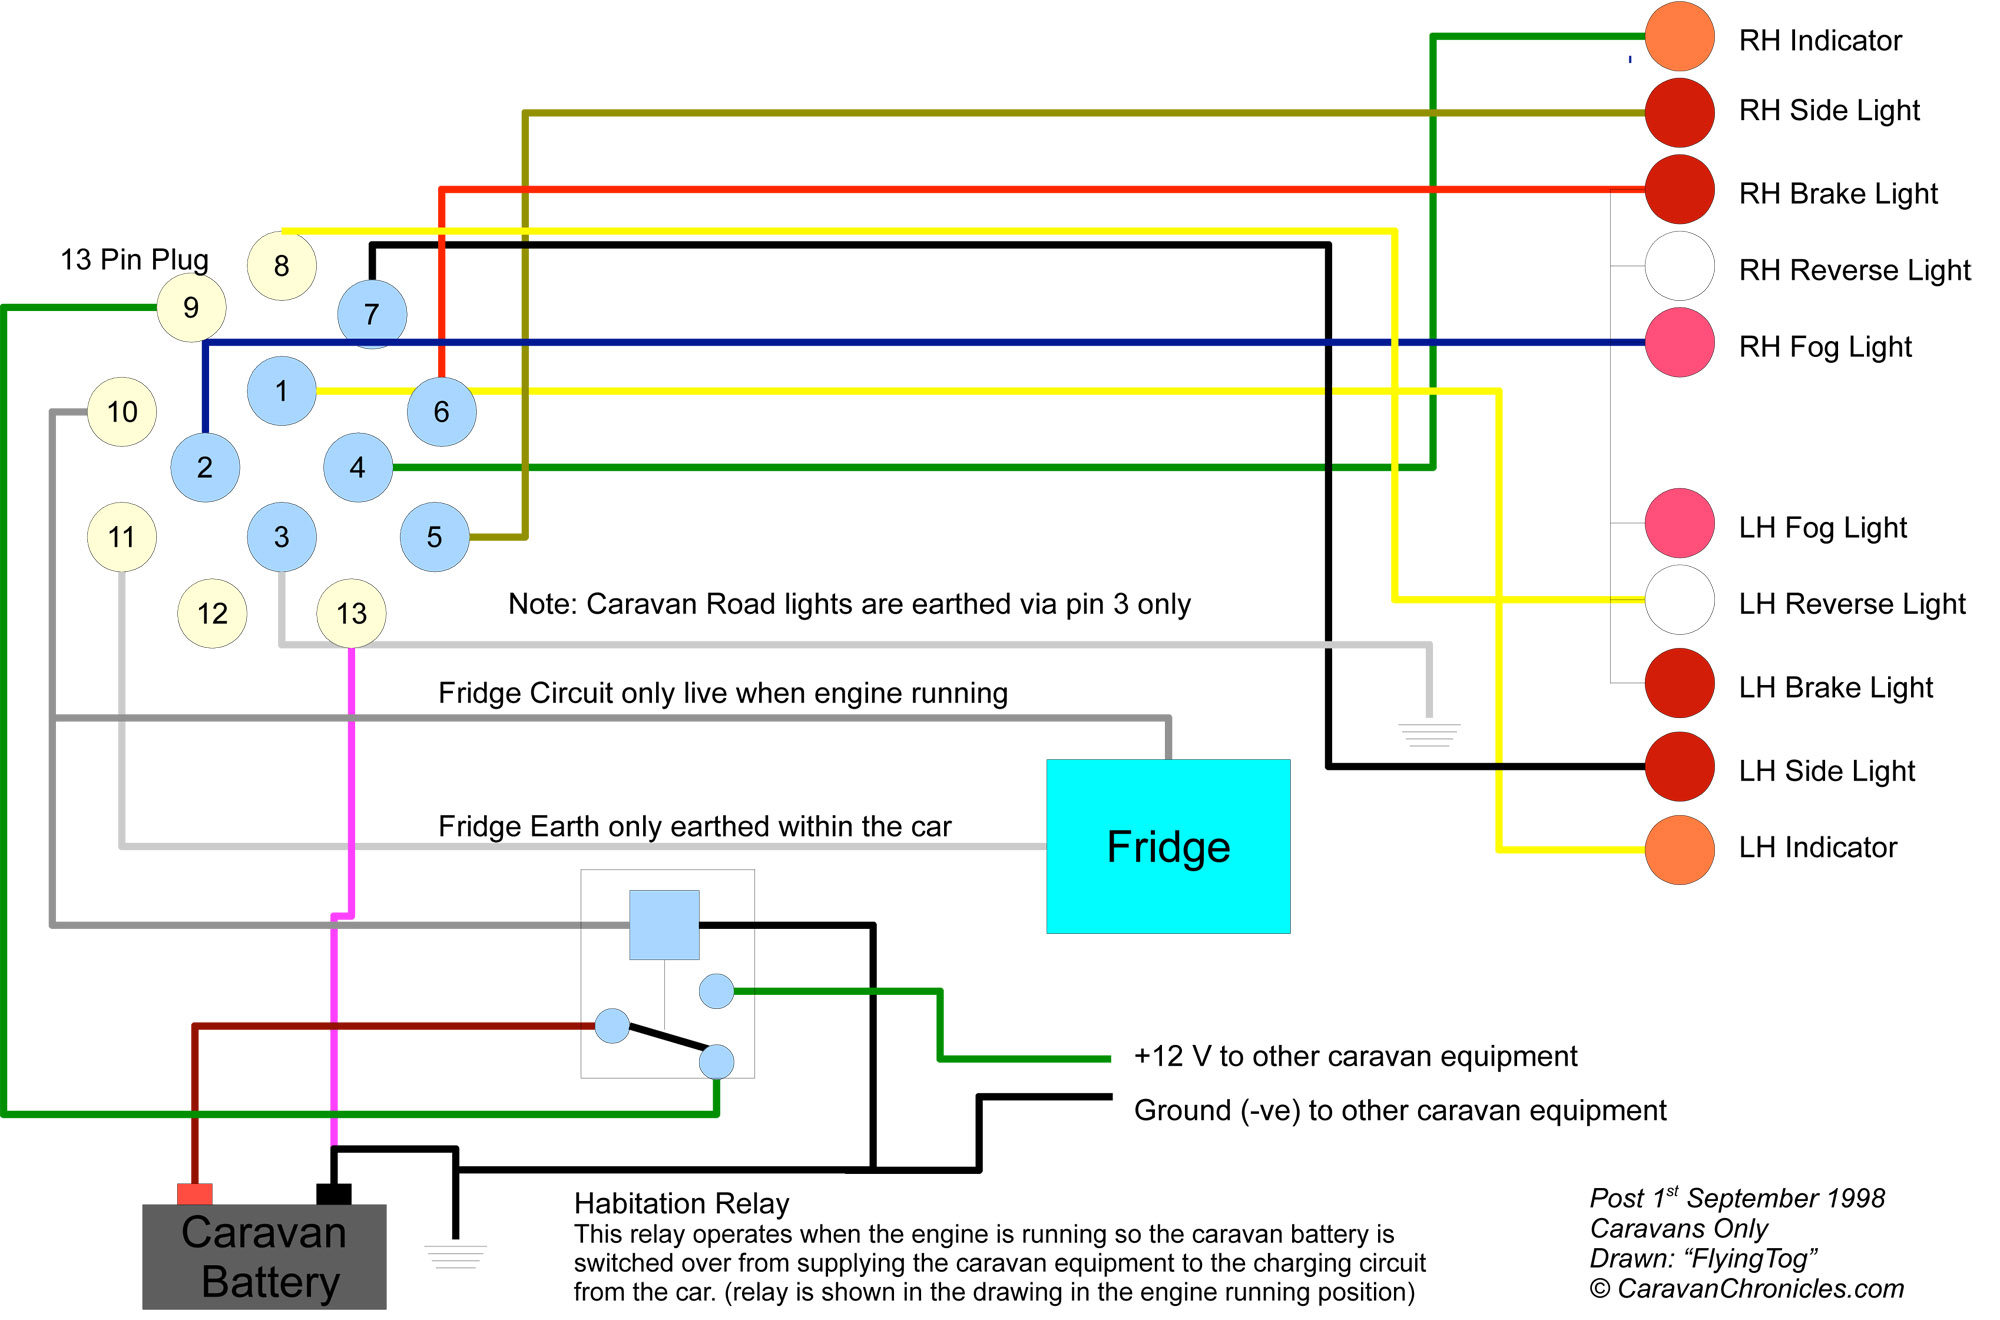 caravan mover wiring diagram caravan wiring diagrams online understanding caravan and tow car electrics caravan chronicles